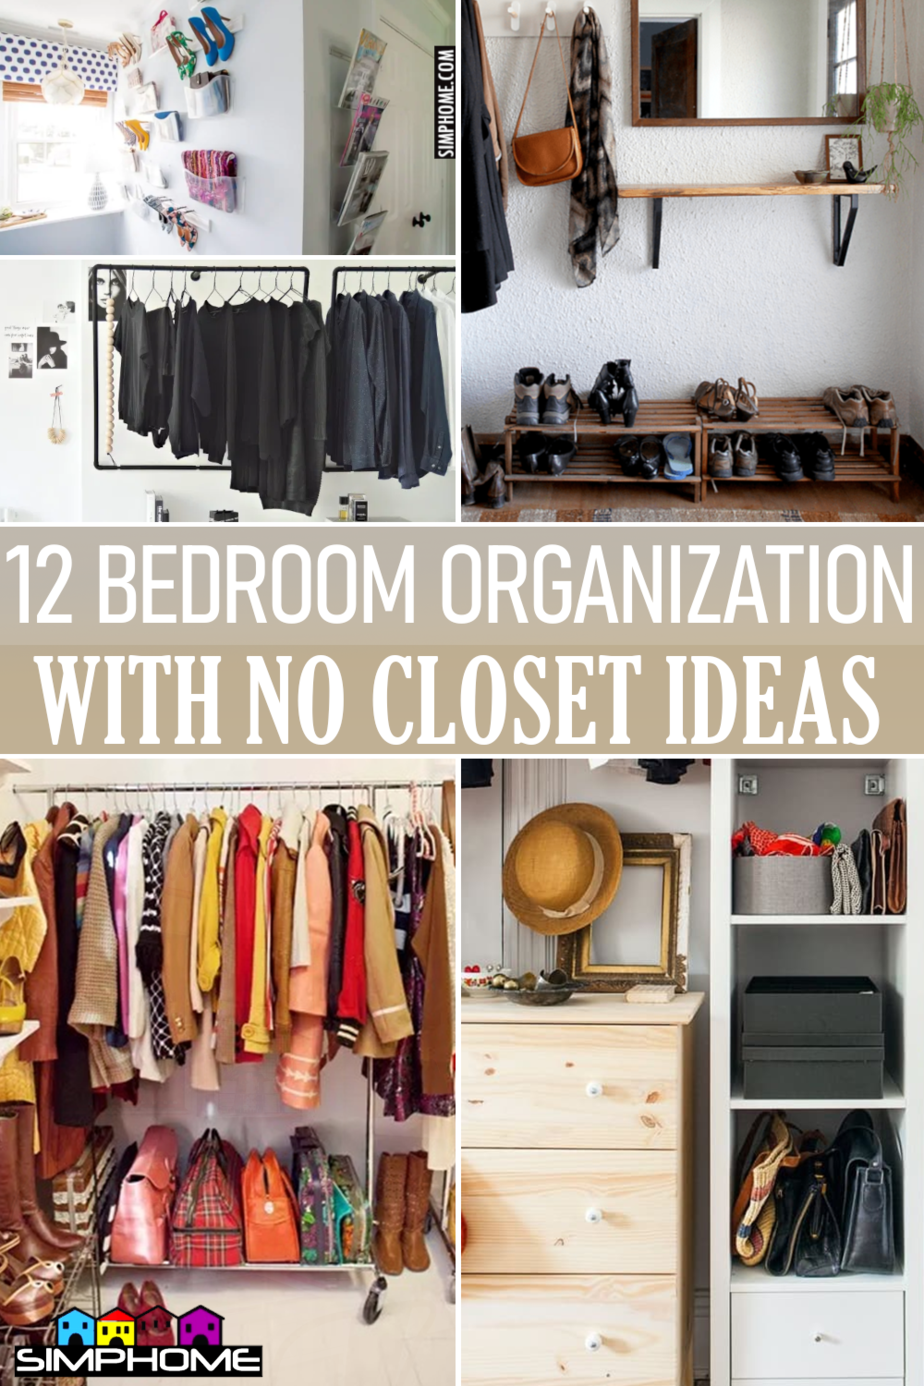 12 Bedroom Organization With No Closet Ideas via Simphome.comFeatured